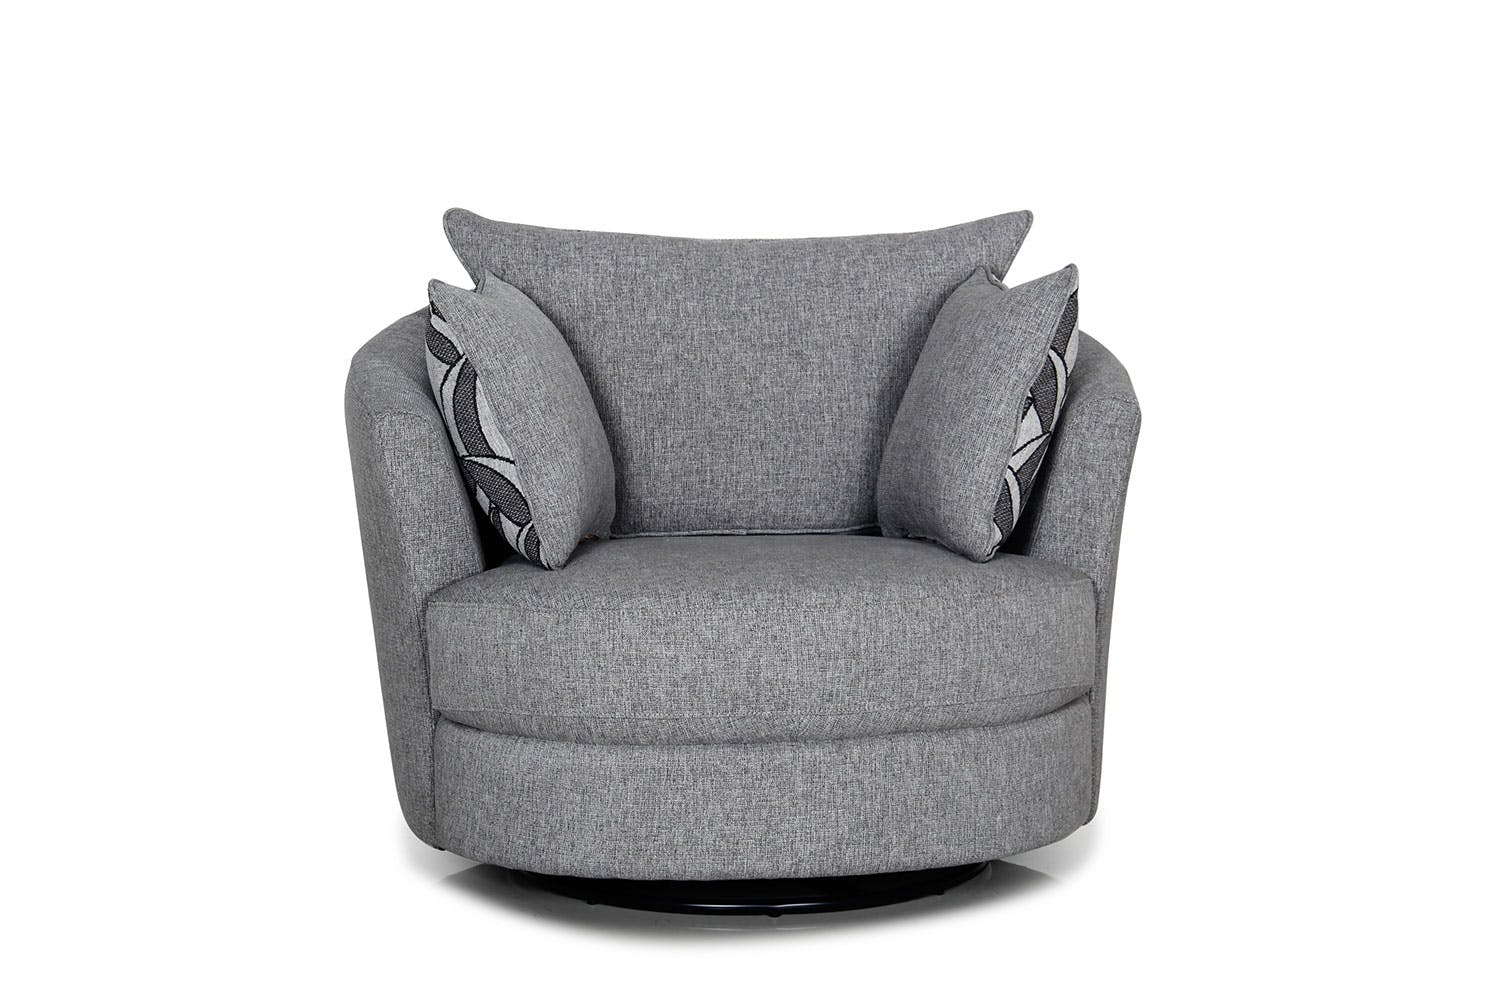 Greystone Small Fabric Swivel Chair